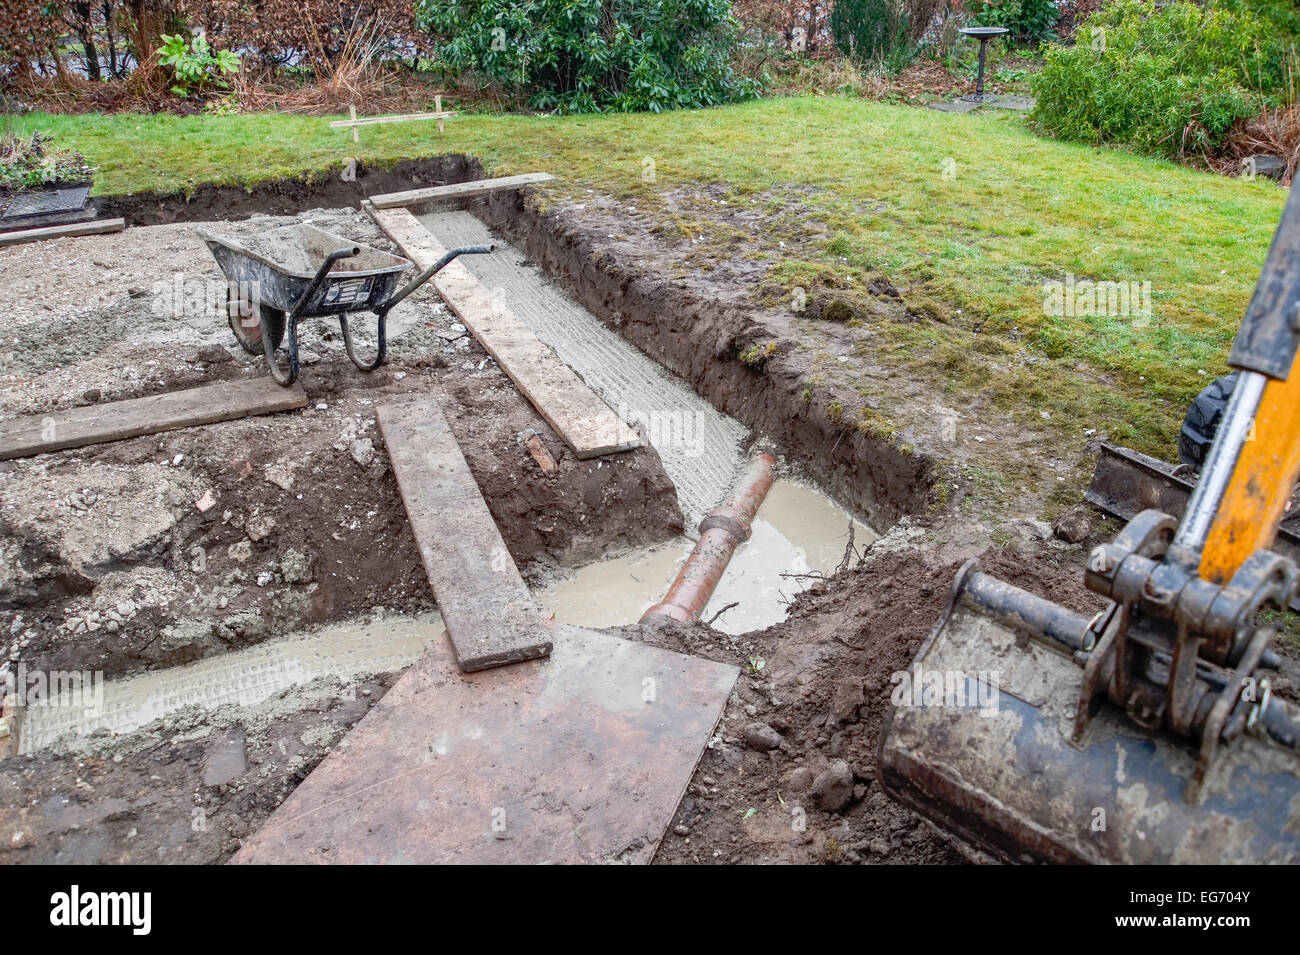 A dug trench for footings foundations for a domestic extension home improvement renovation. Horizontal format with - Stock Image